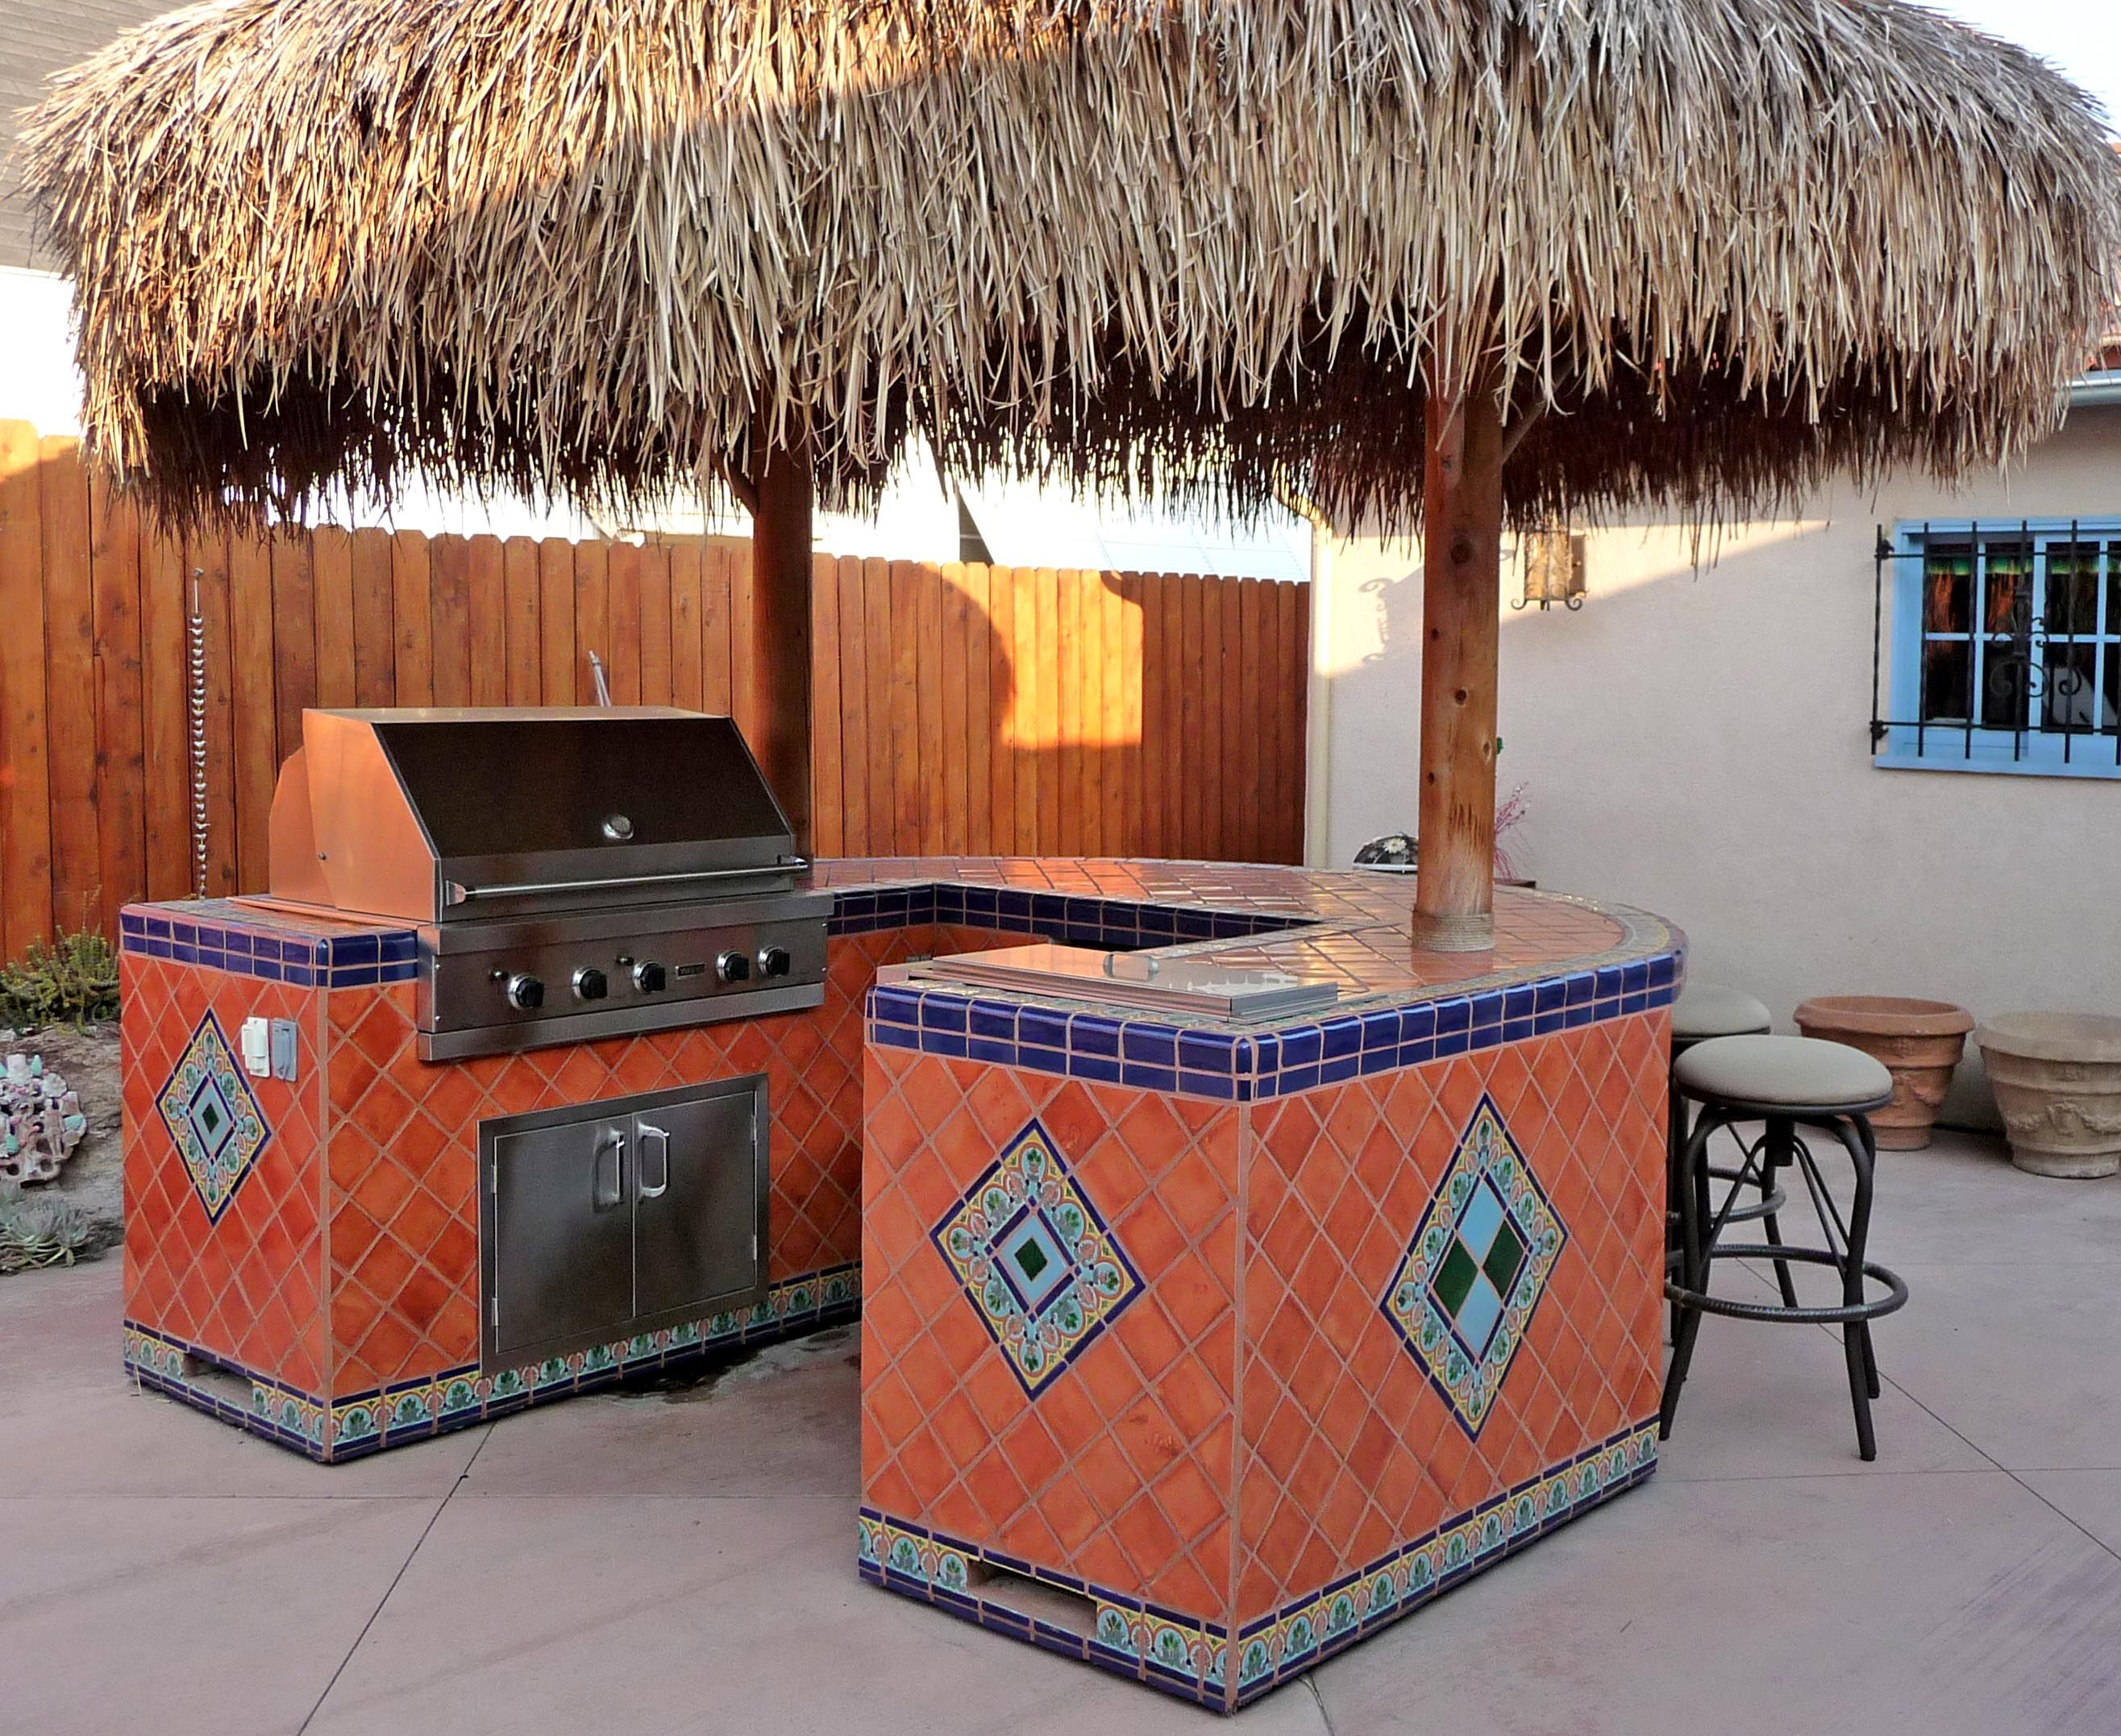 Backyard palapa style island barbeque using Mexican tiles by